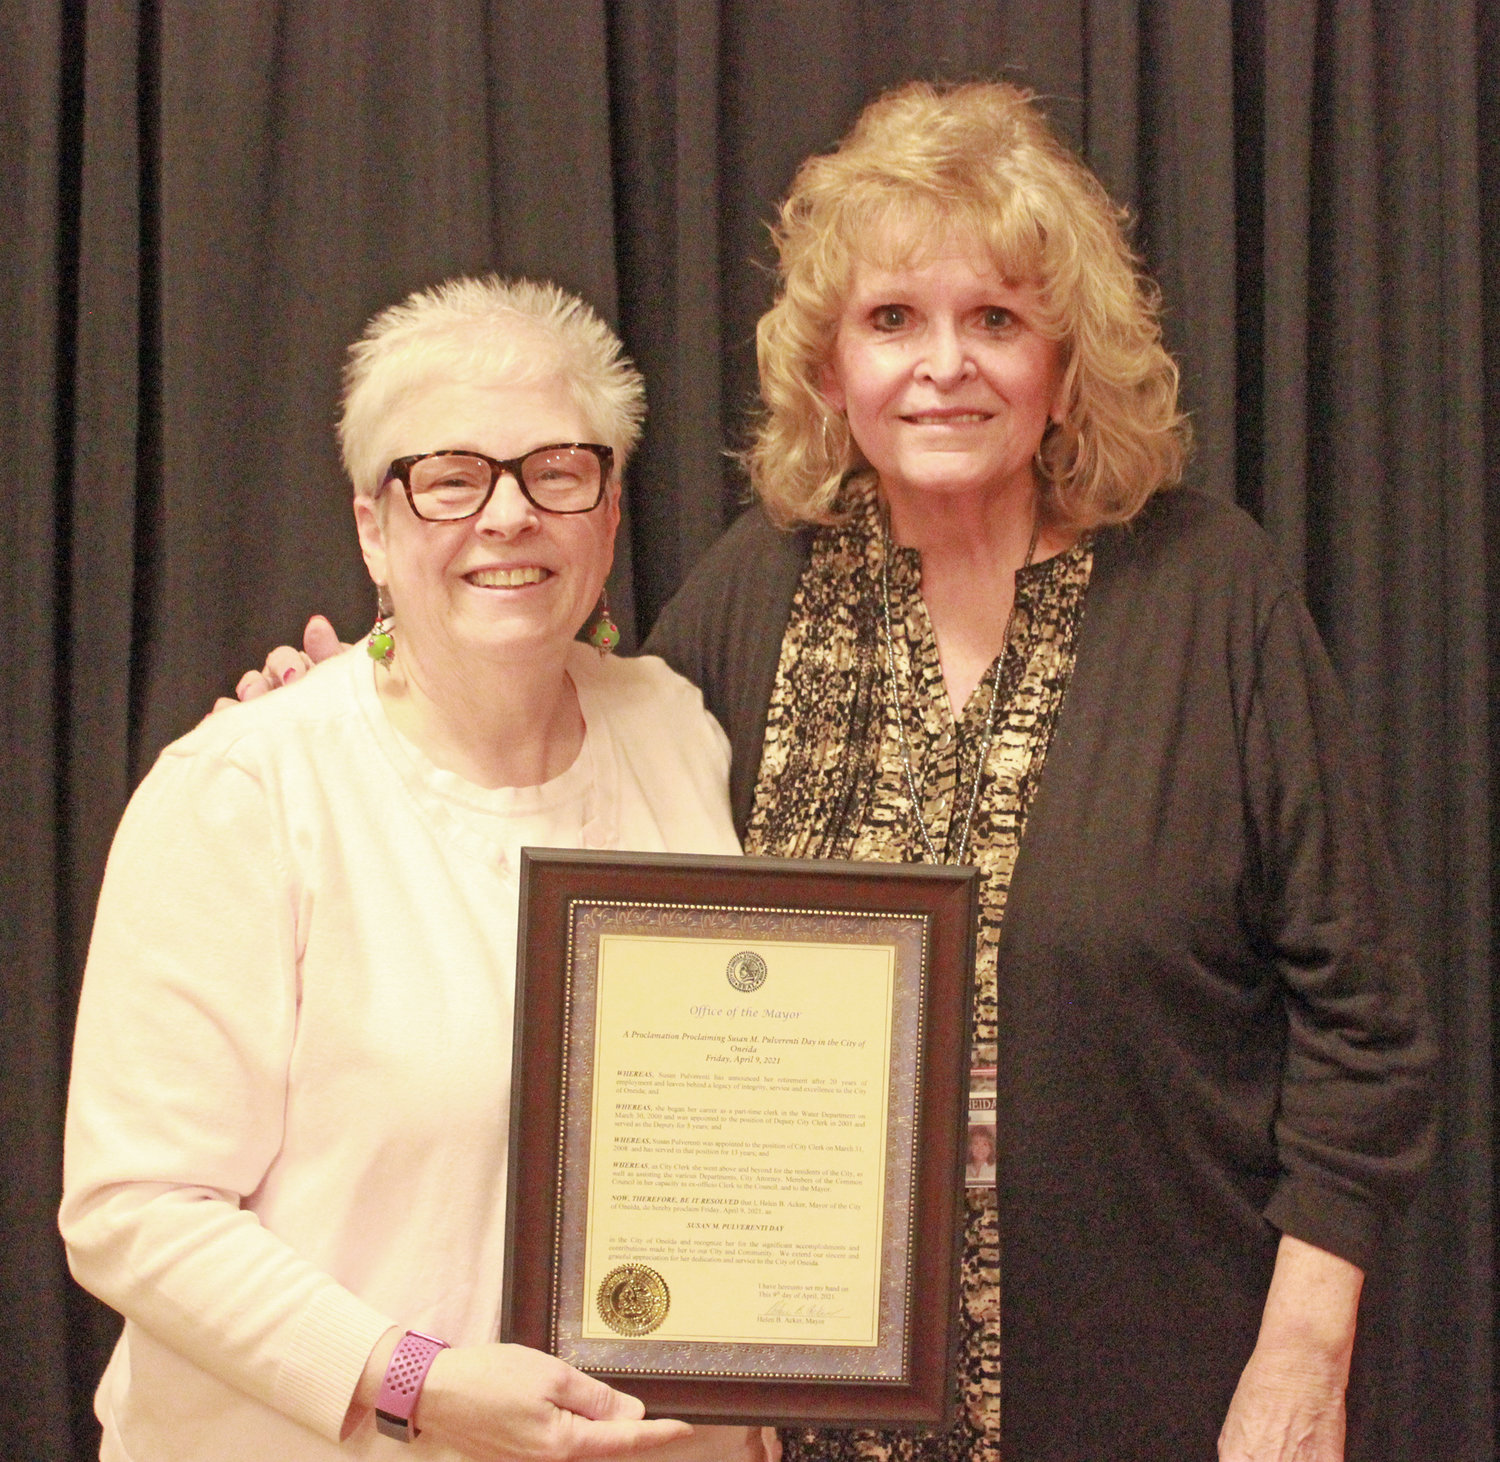 A LEGACY RECOGNIZED — Oneida City Clerk Sue Pulverenti, right, is presented with a proclamation by Mayor Helen Acker declaring Friday, April 9 — her official retirement date — as Sue Pulverenti Day at the Tuesday, April 6 Common Council meeting.